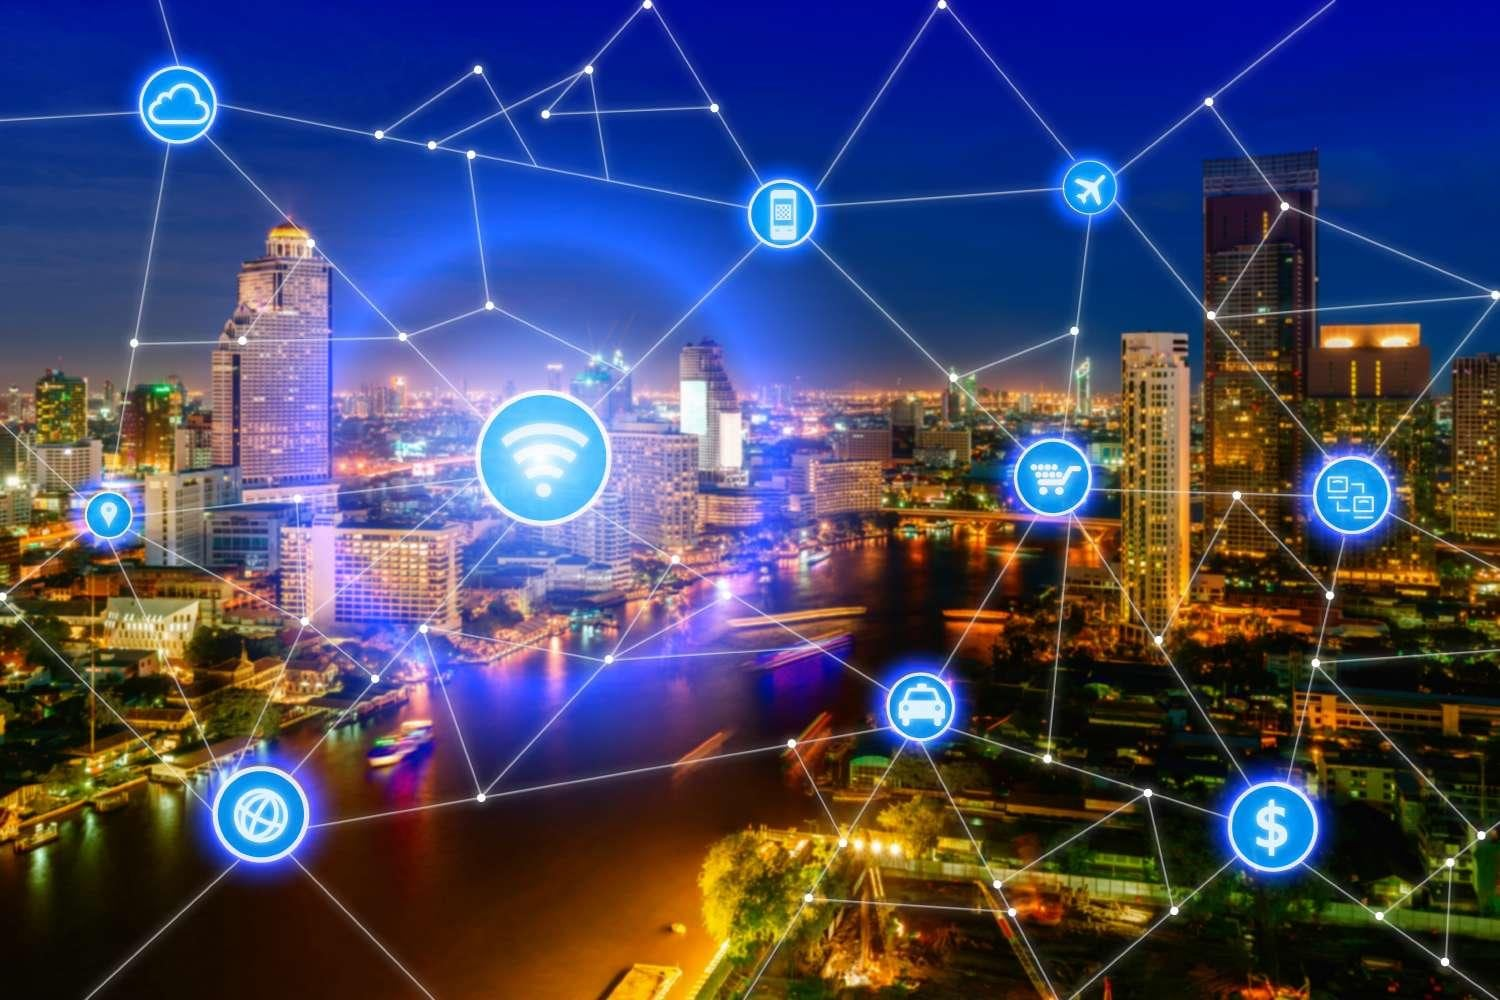 Smart city and wireless communication network, business district with office building, abstract image visual, internet of things concept